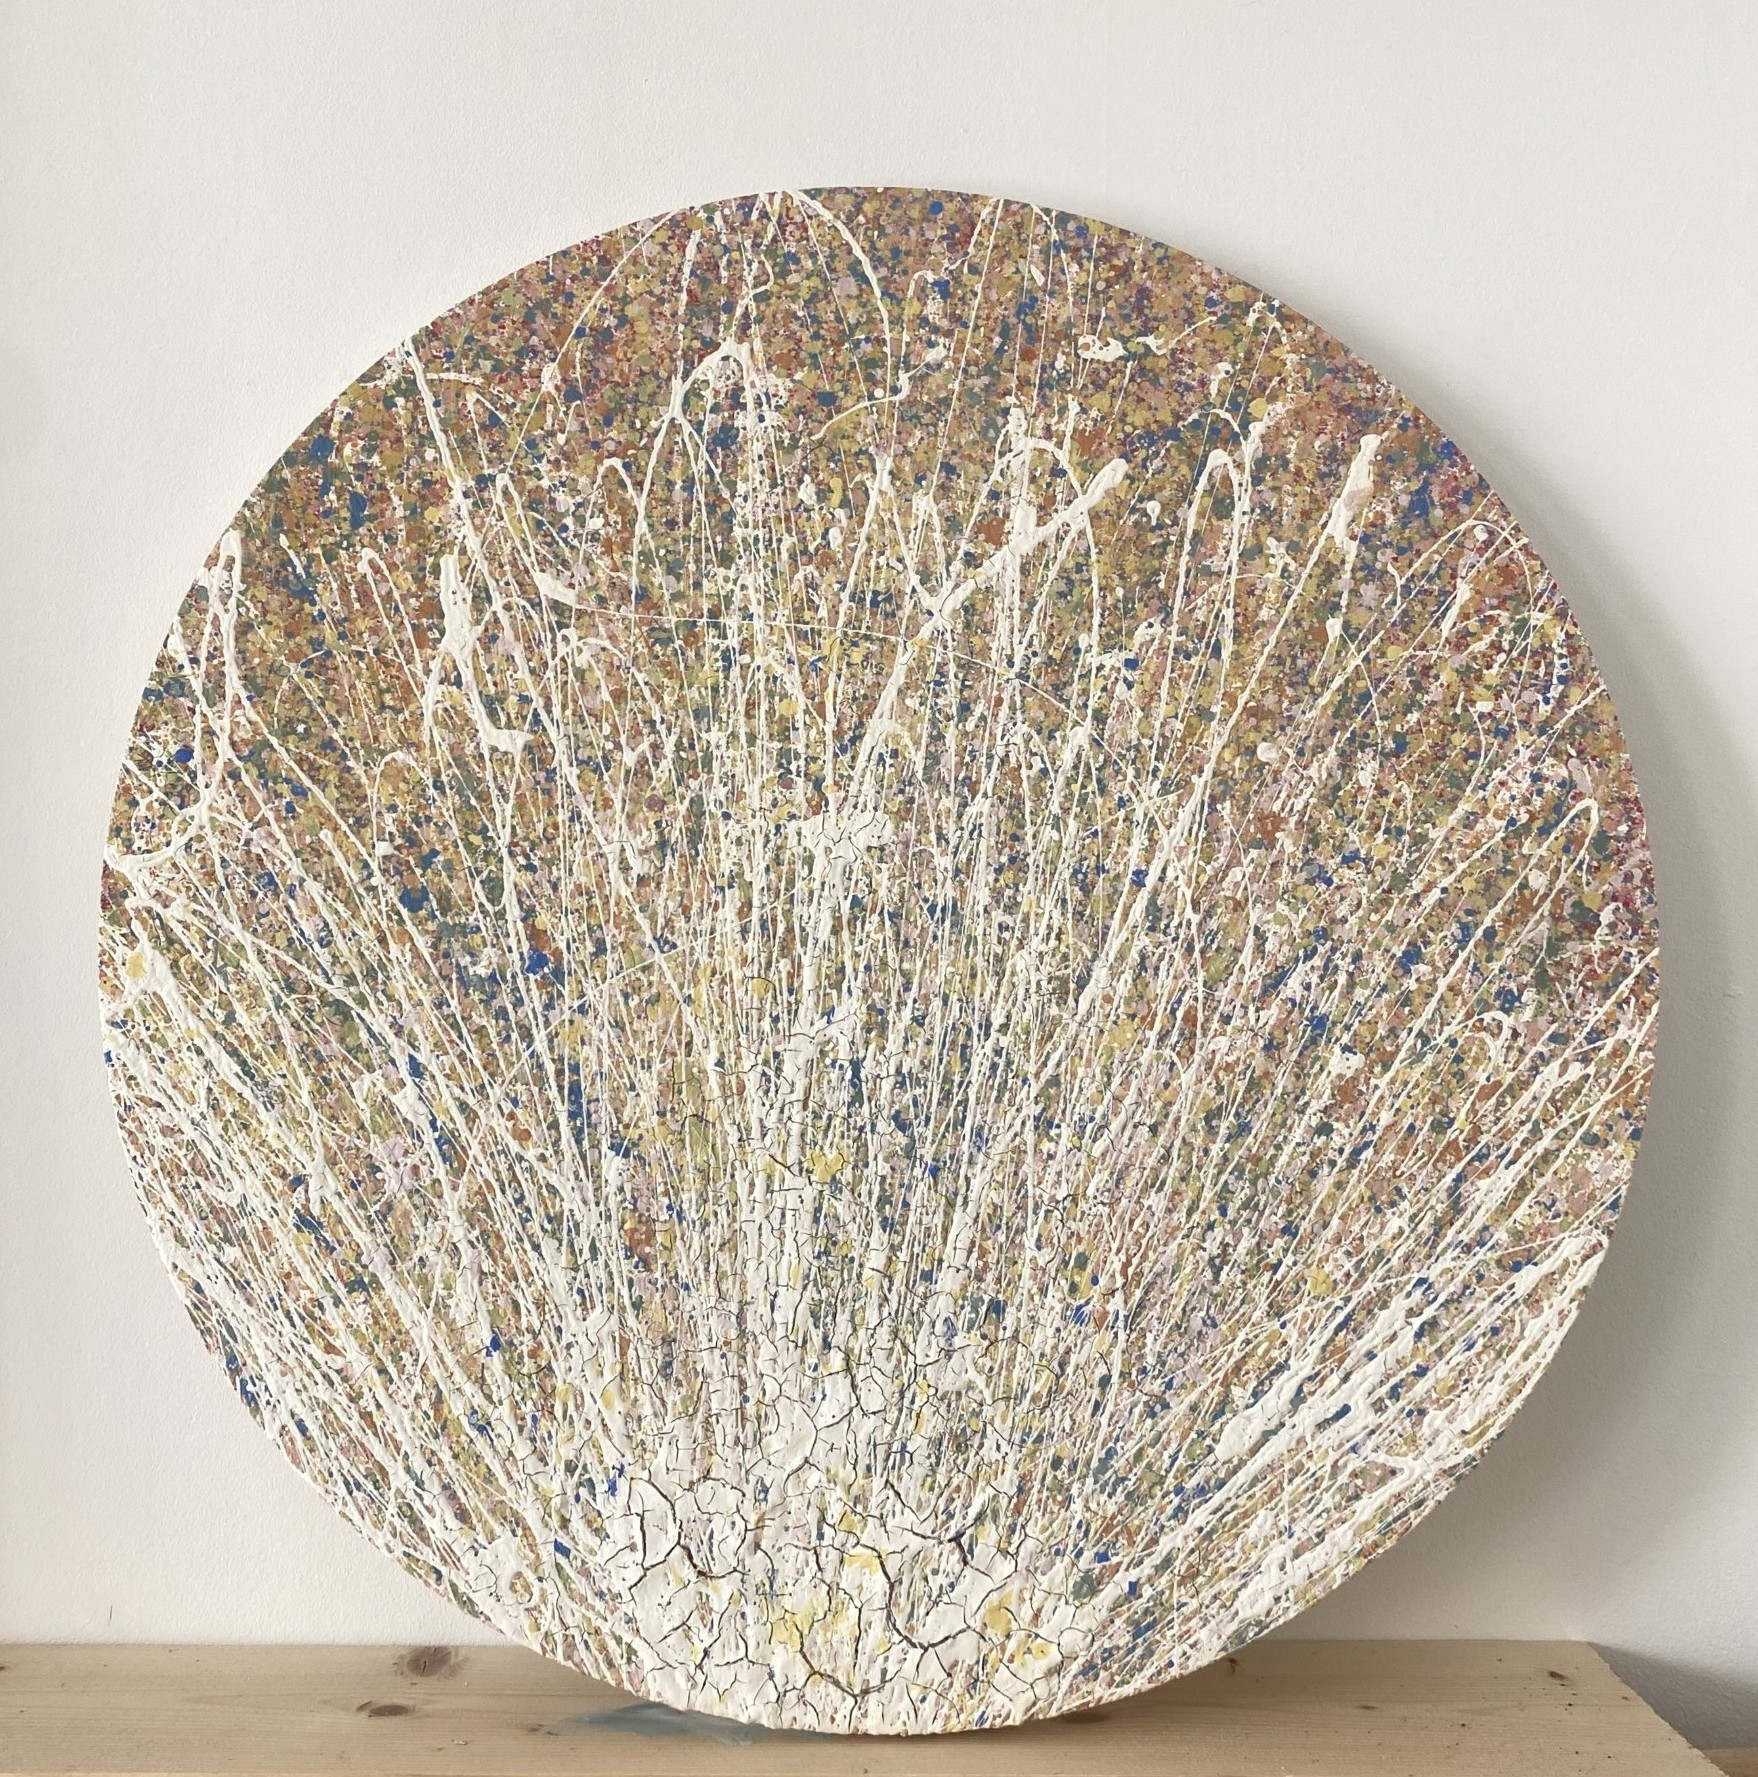 a gallery view of dawning of autumn in somerset by somerset artist emily duchscherer kirk created with eco friendly, water based paints which show hints of a glossy affect this circular artwork is finished a satin varnish that gives a three dimensional affect this round textured abstract painting is made on a cotton canvas measuring 60 centimetres in diameter which is approximately 24 Inches dawning of autumn in Somerset was completed in my home studio located in south Somerset